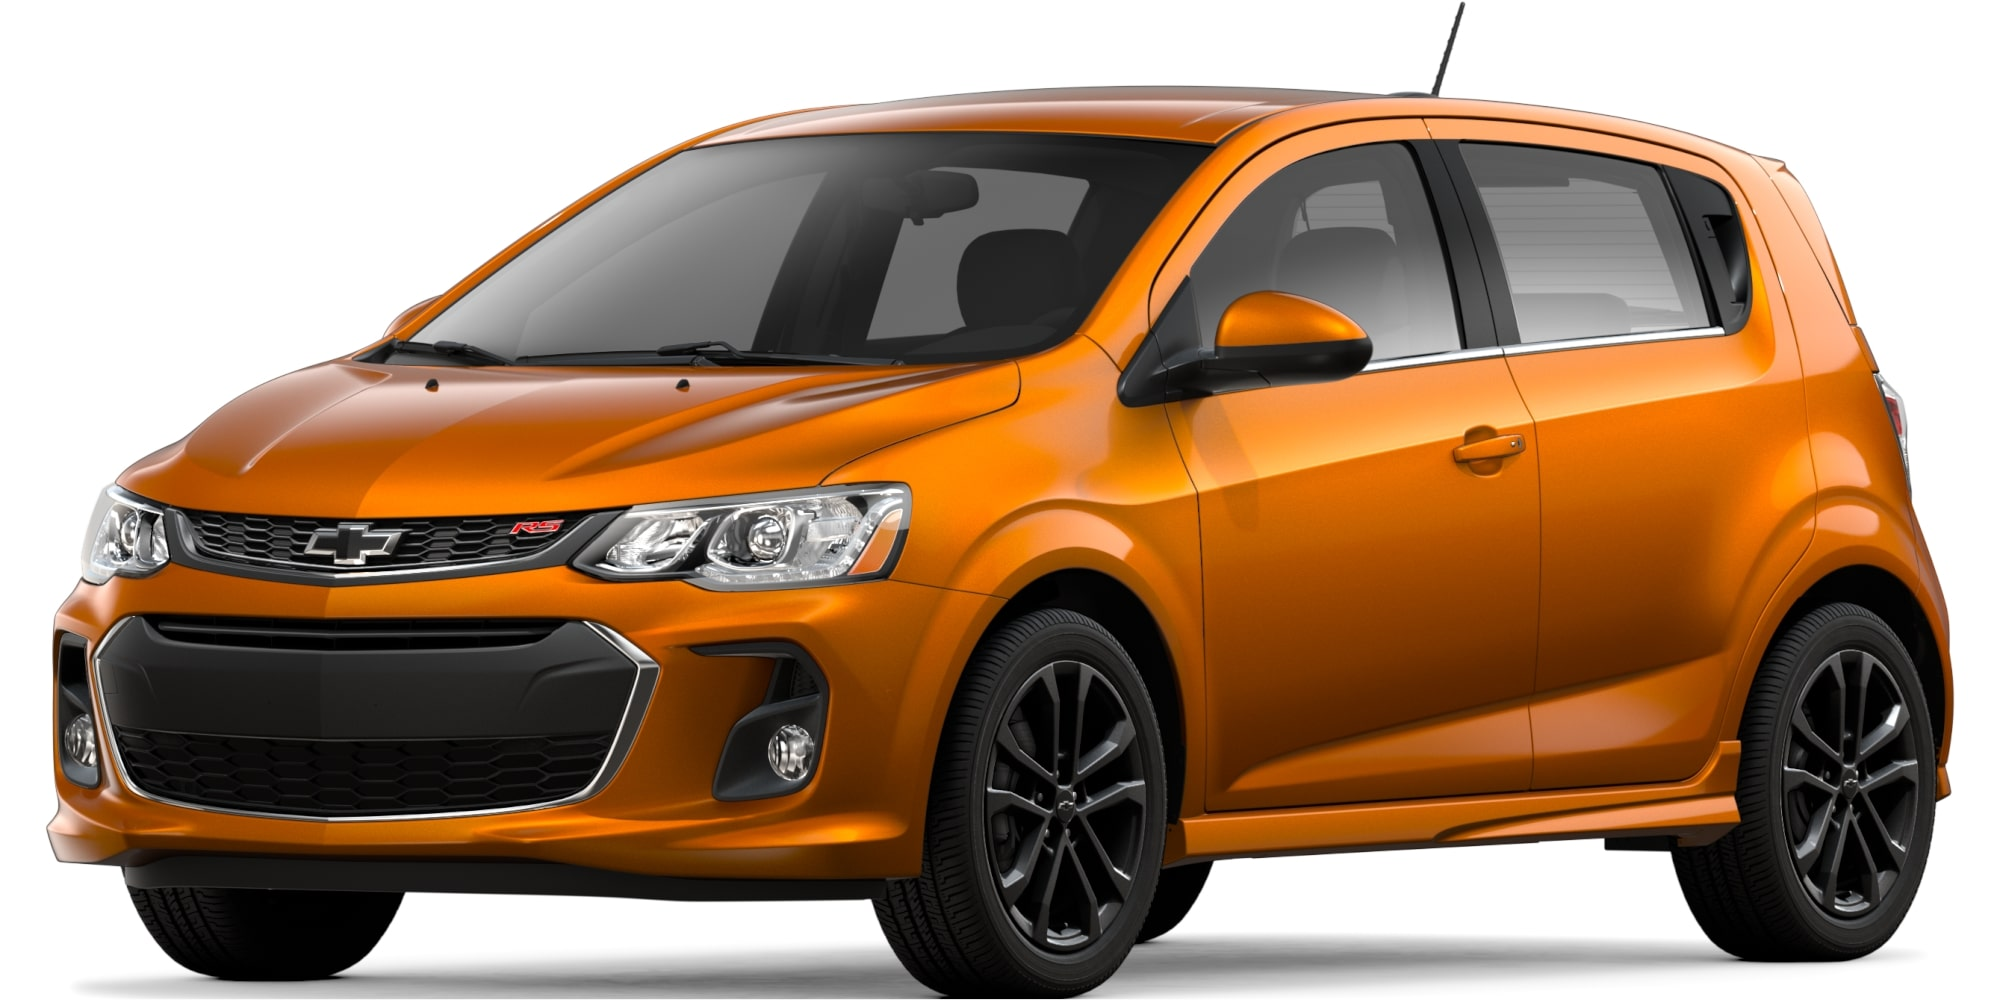 Chevrolet Sonic Owners Manual: Care of Safety Belts